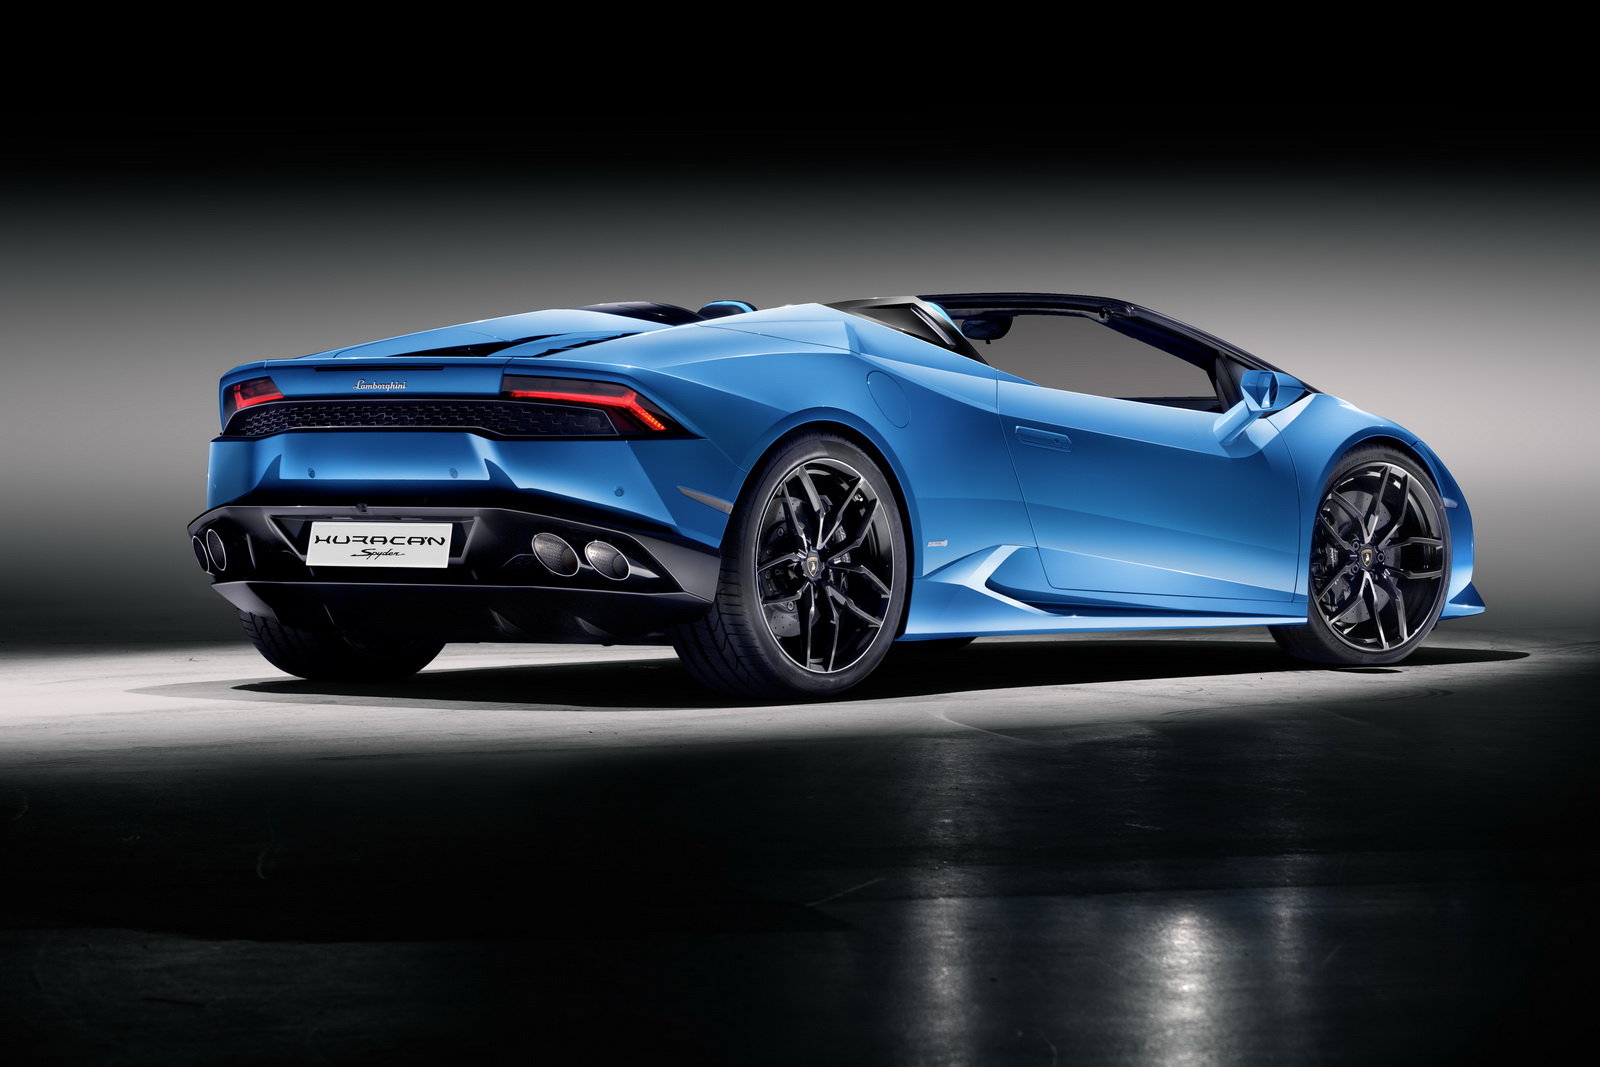 Say Hello To The New Lamborghini Huracan Lp 610 4 Spyder Carscoops